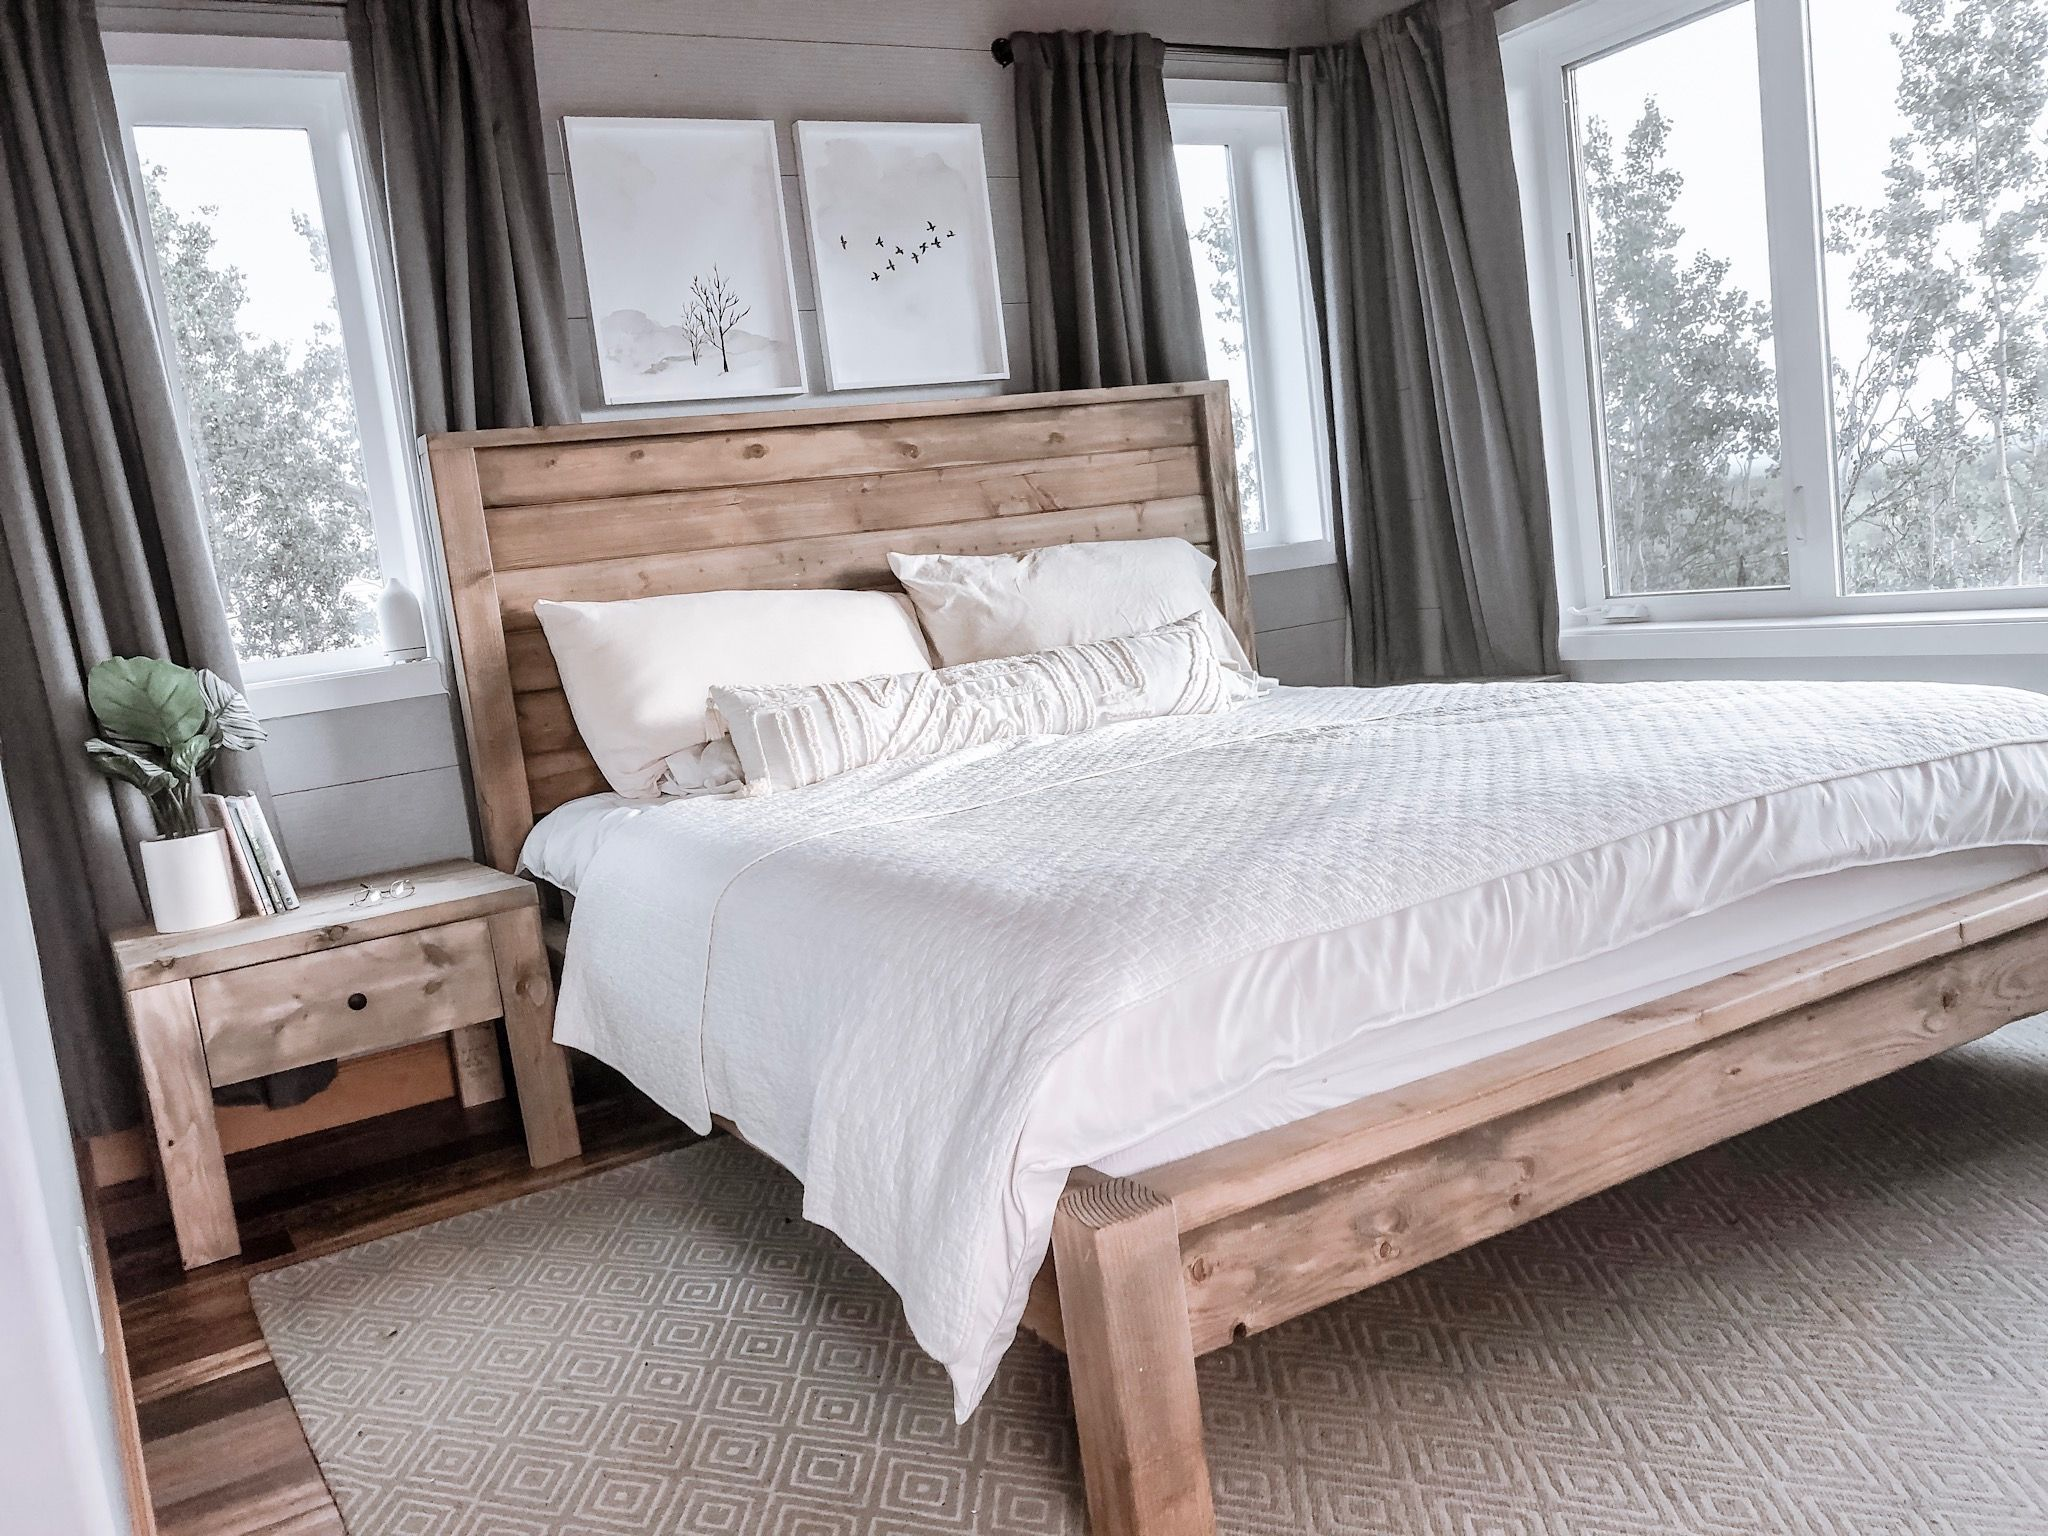 Modern Farmhouse Bed Frame Farmhouse bed frame, Bed